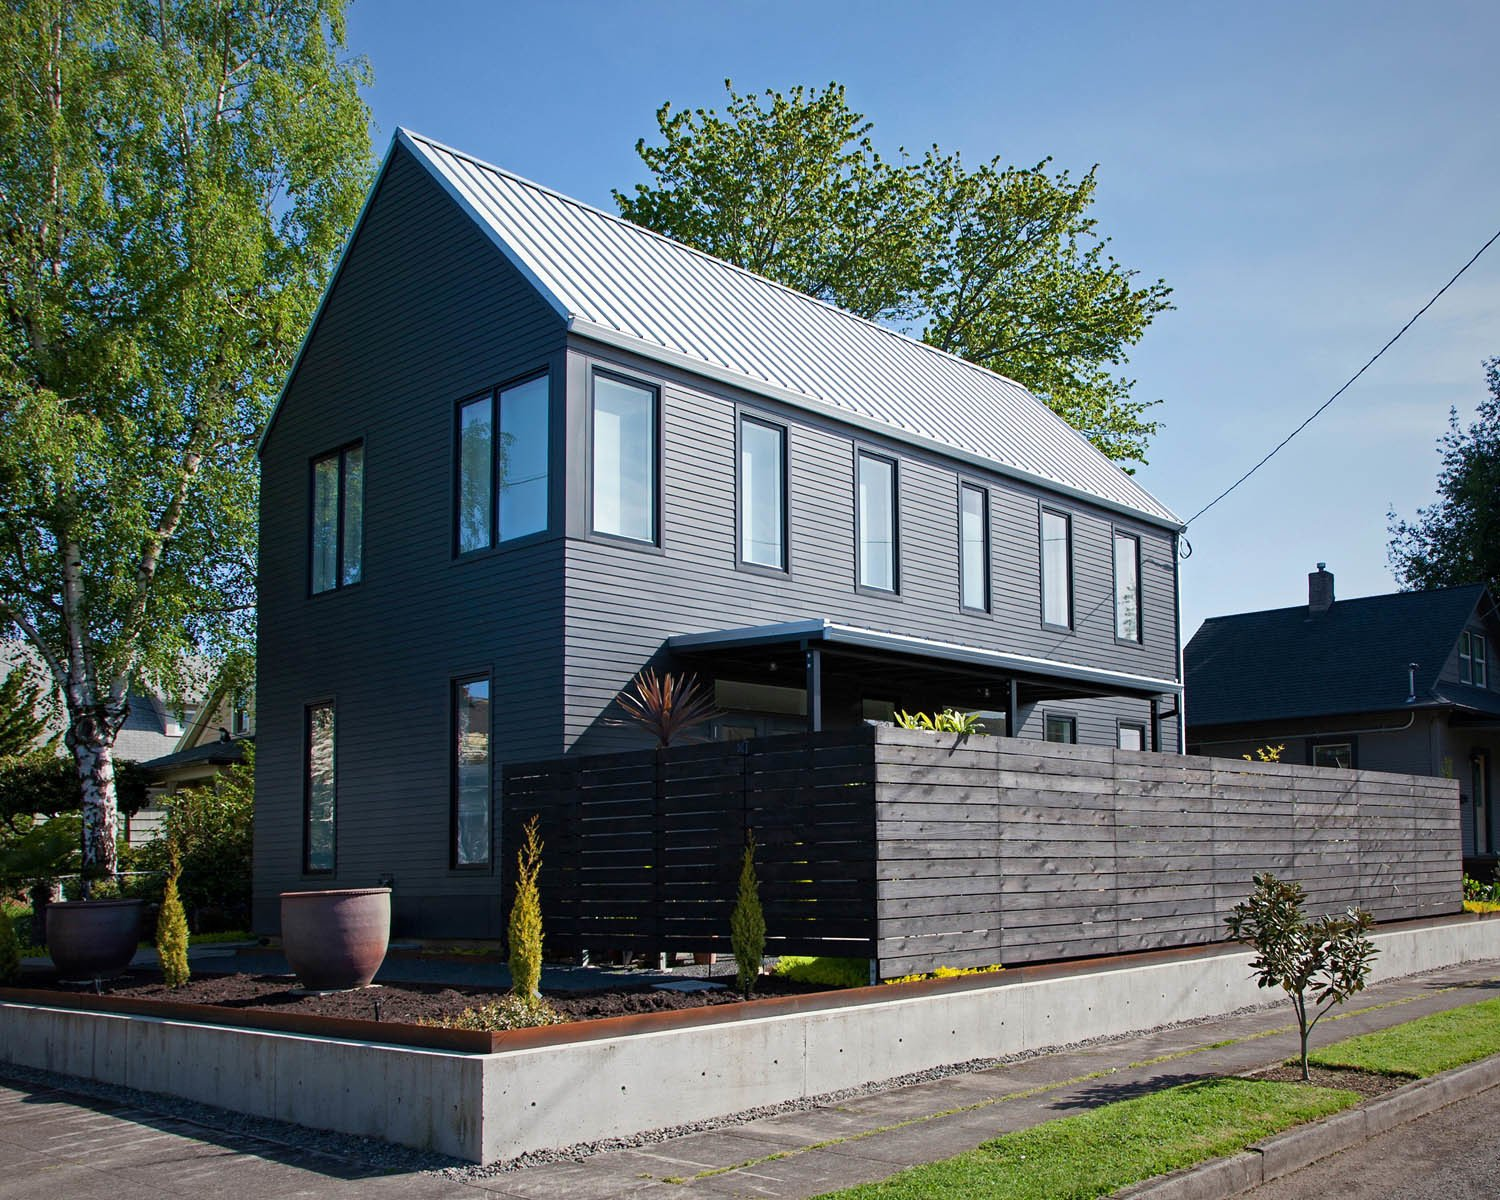 Outdoor, Side Yard, Wood Fences, Wall, and Horizontal Fences, Wall Scott Pitek designed this gabled structure for Betty Rahman on a 5,000-square-foot lot in Portland, Oregon.  Siding from Modern Gabled House in Portland